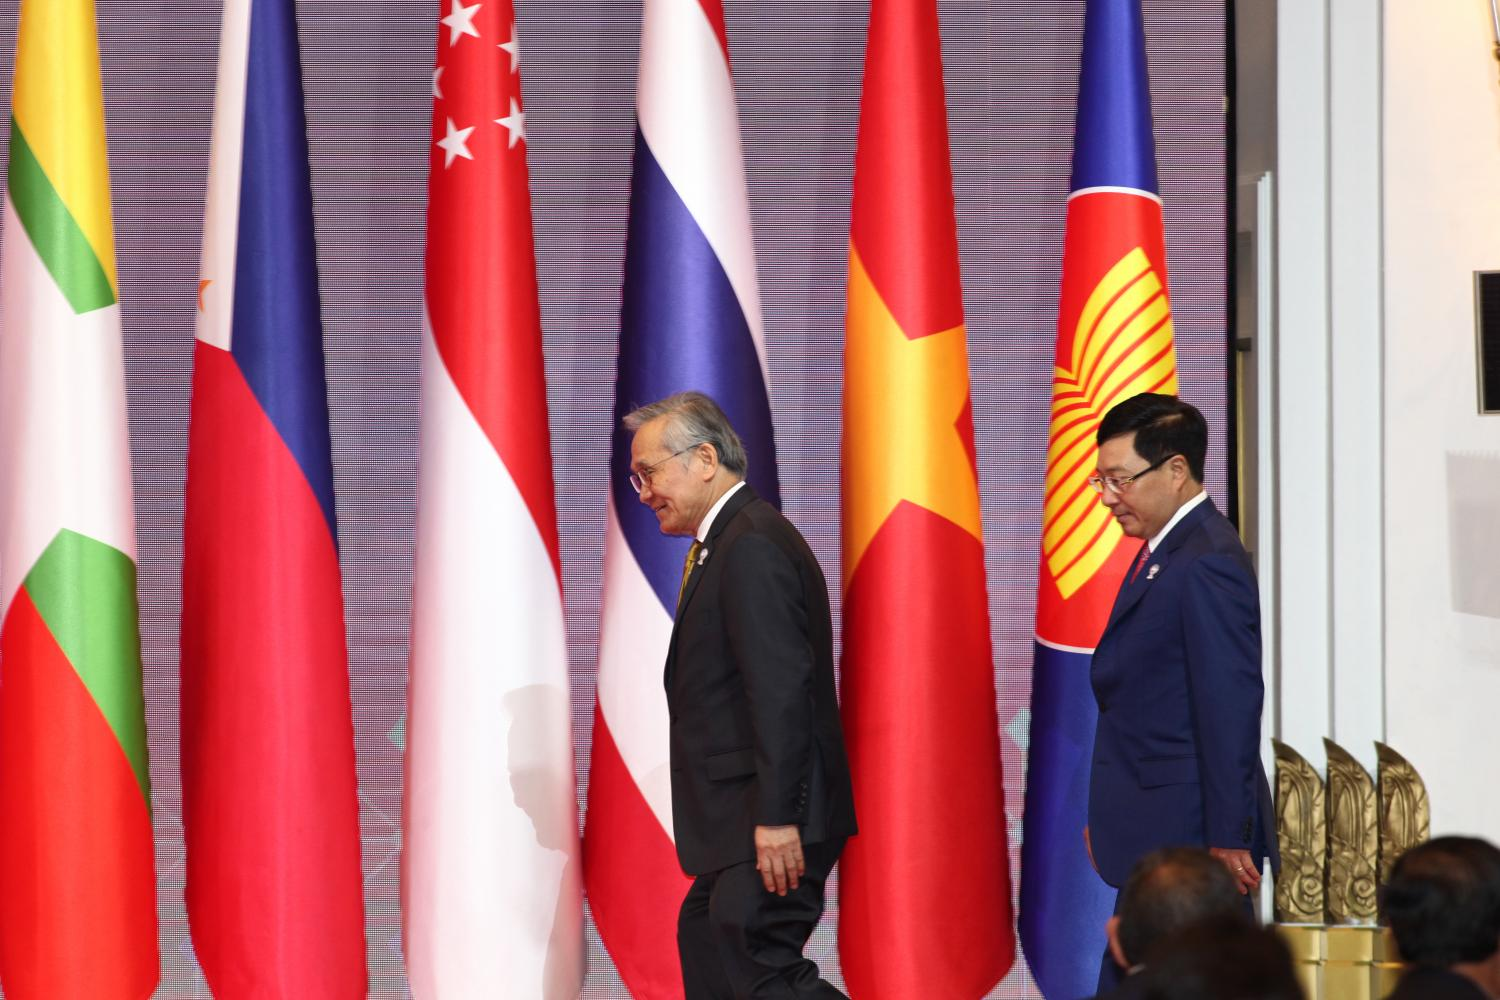 Thailand's Foreign Minister Don Pramudwinai, left, and Vietnam's Deputy Prime Minister and Foreign Minister Pham Binh Minh at the Asean Foreign Ministers' Meeting in Bangkok in June. Vietnam becomes Asean chair next year. PATTARAPONG CHATPATTARASILL